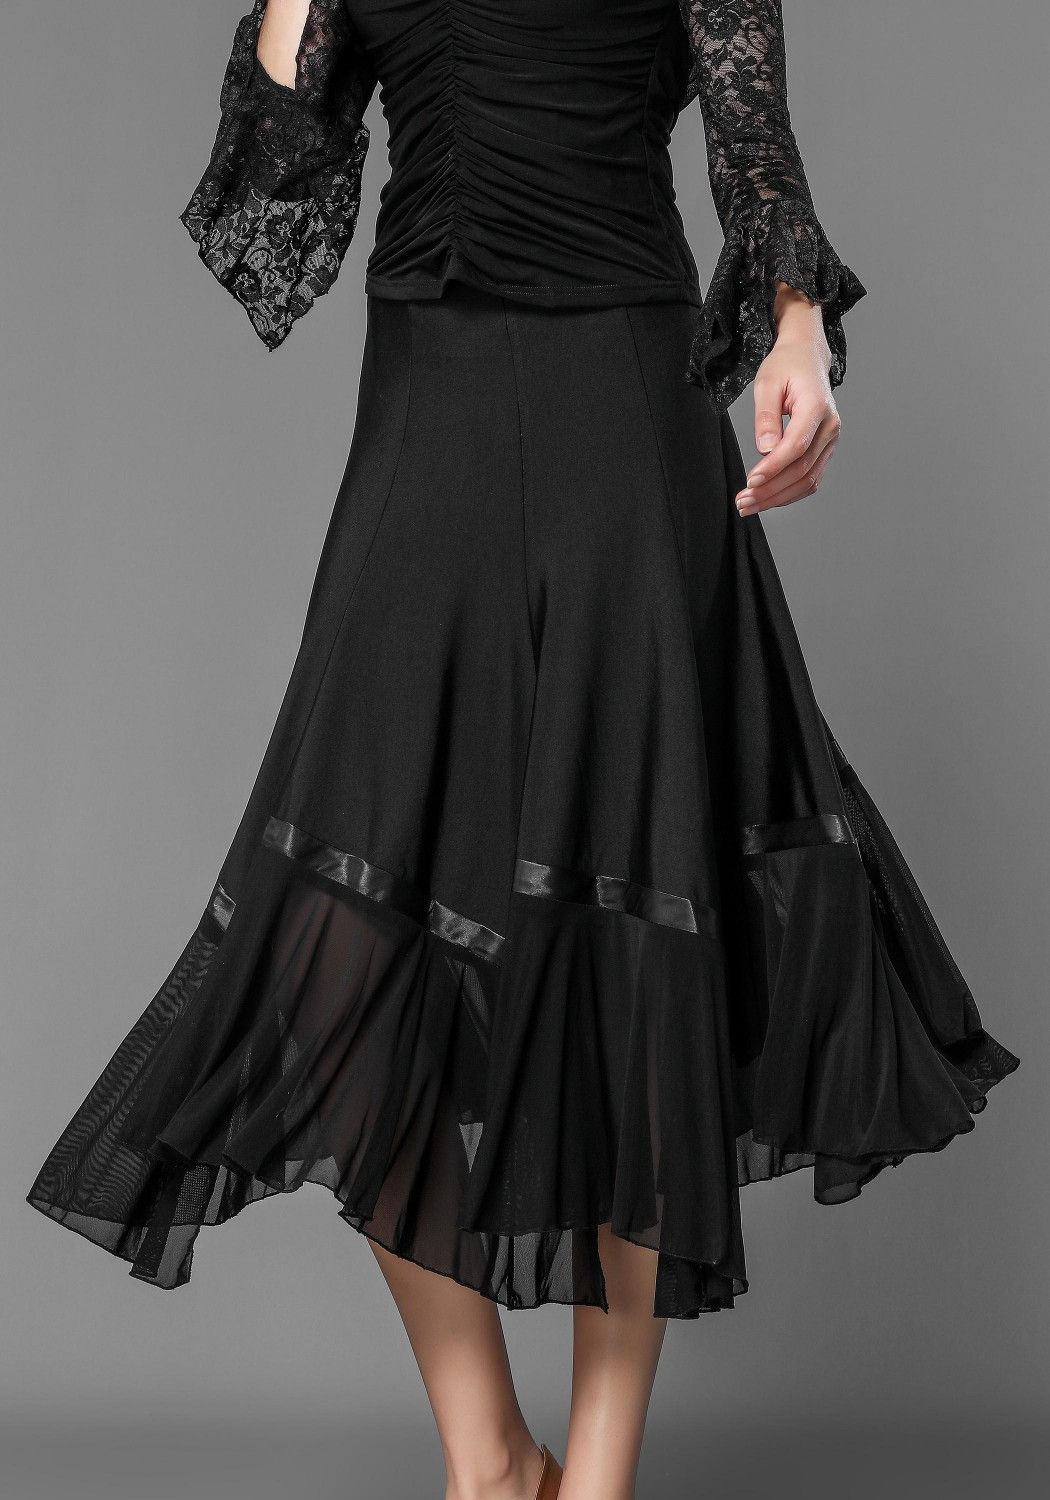 Luxury Crepe and Stretch Net Ballroom Skirt